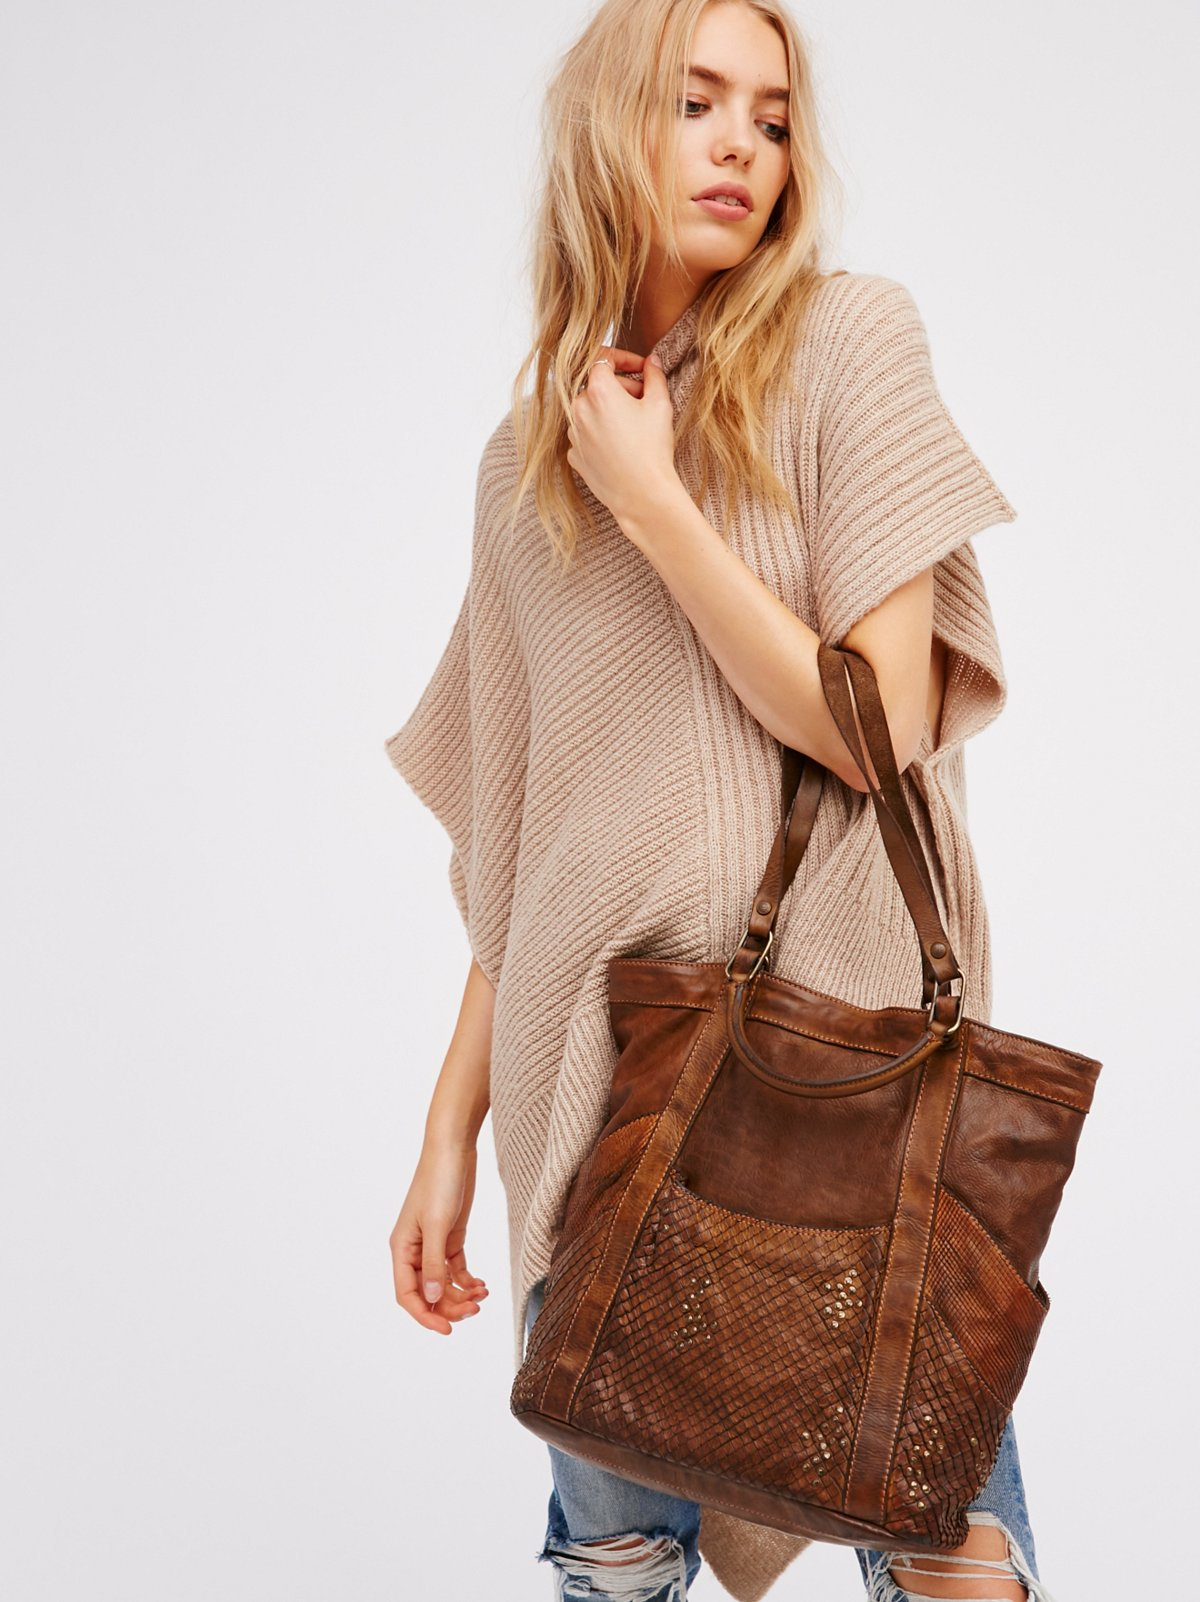 Primo Distressed Tote